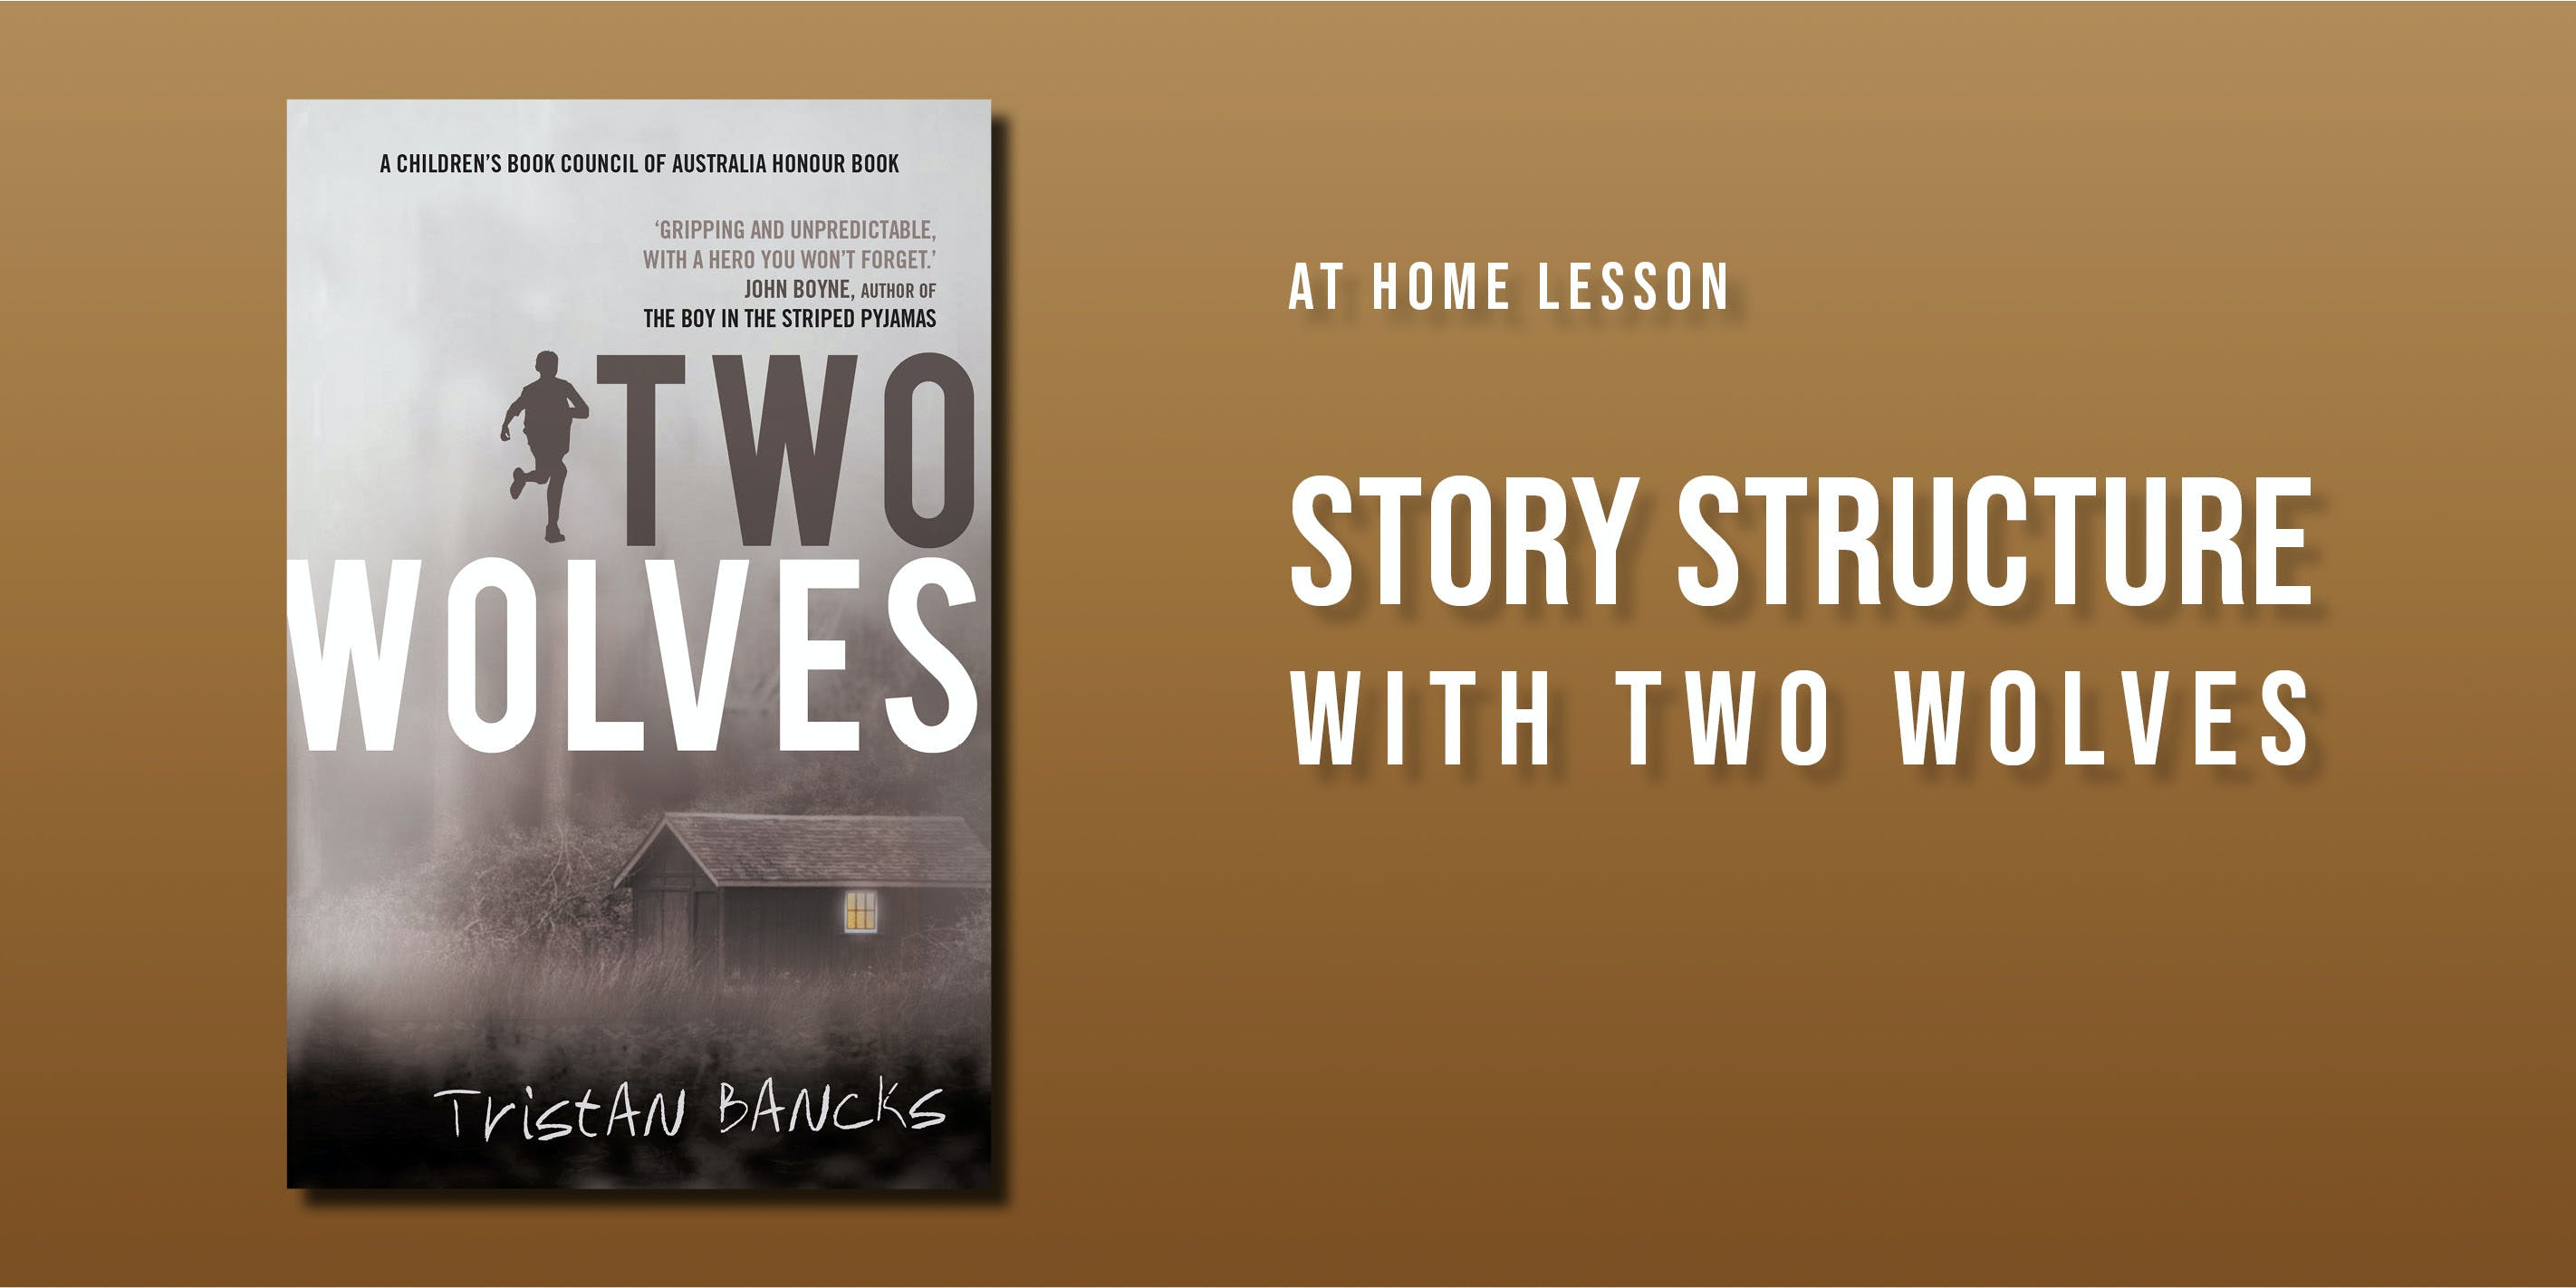 At home lesson: story structure with Two Wolves